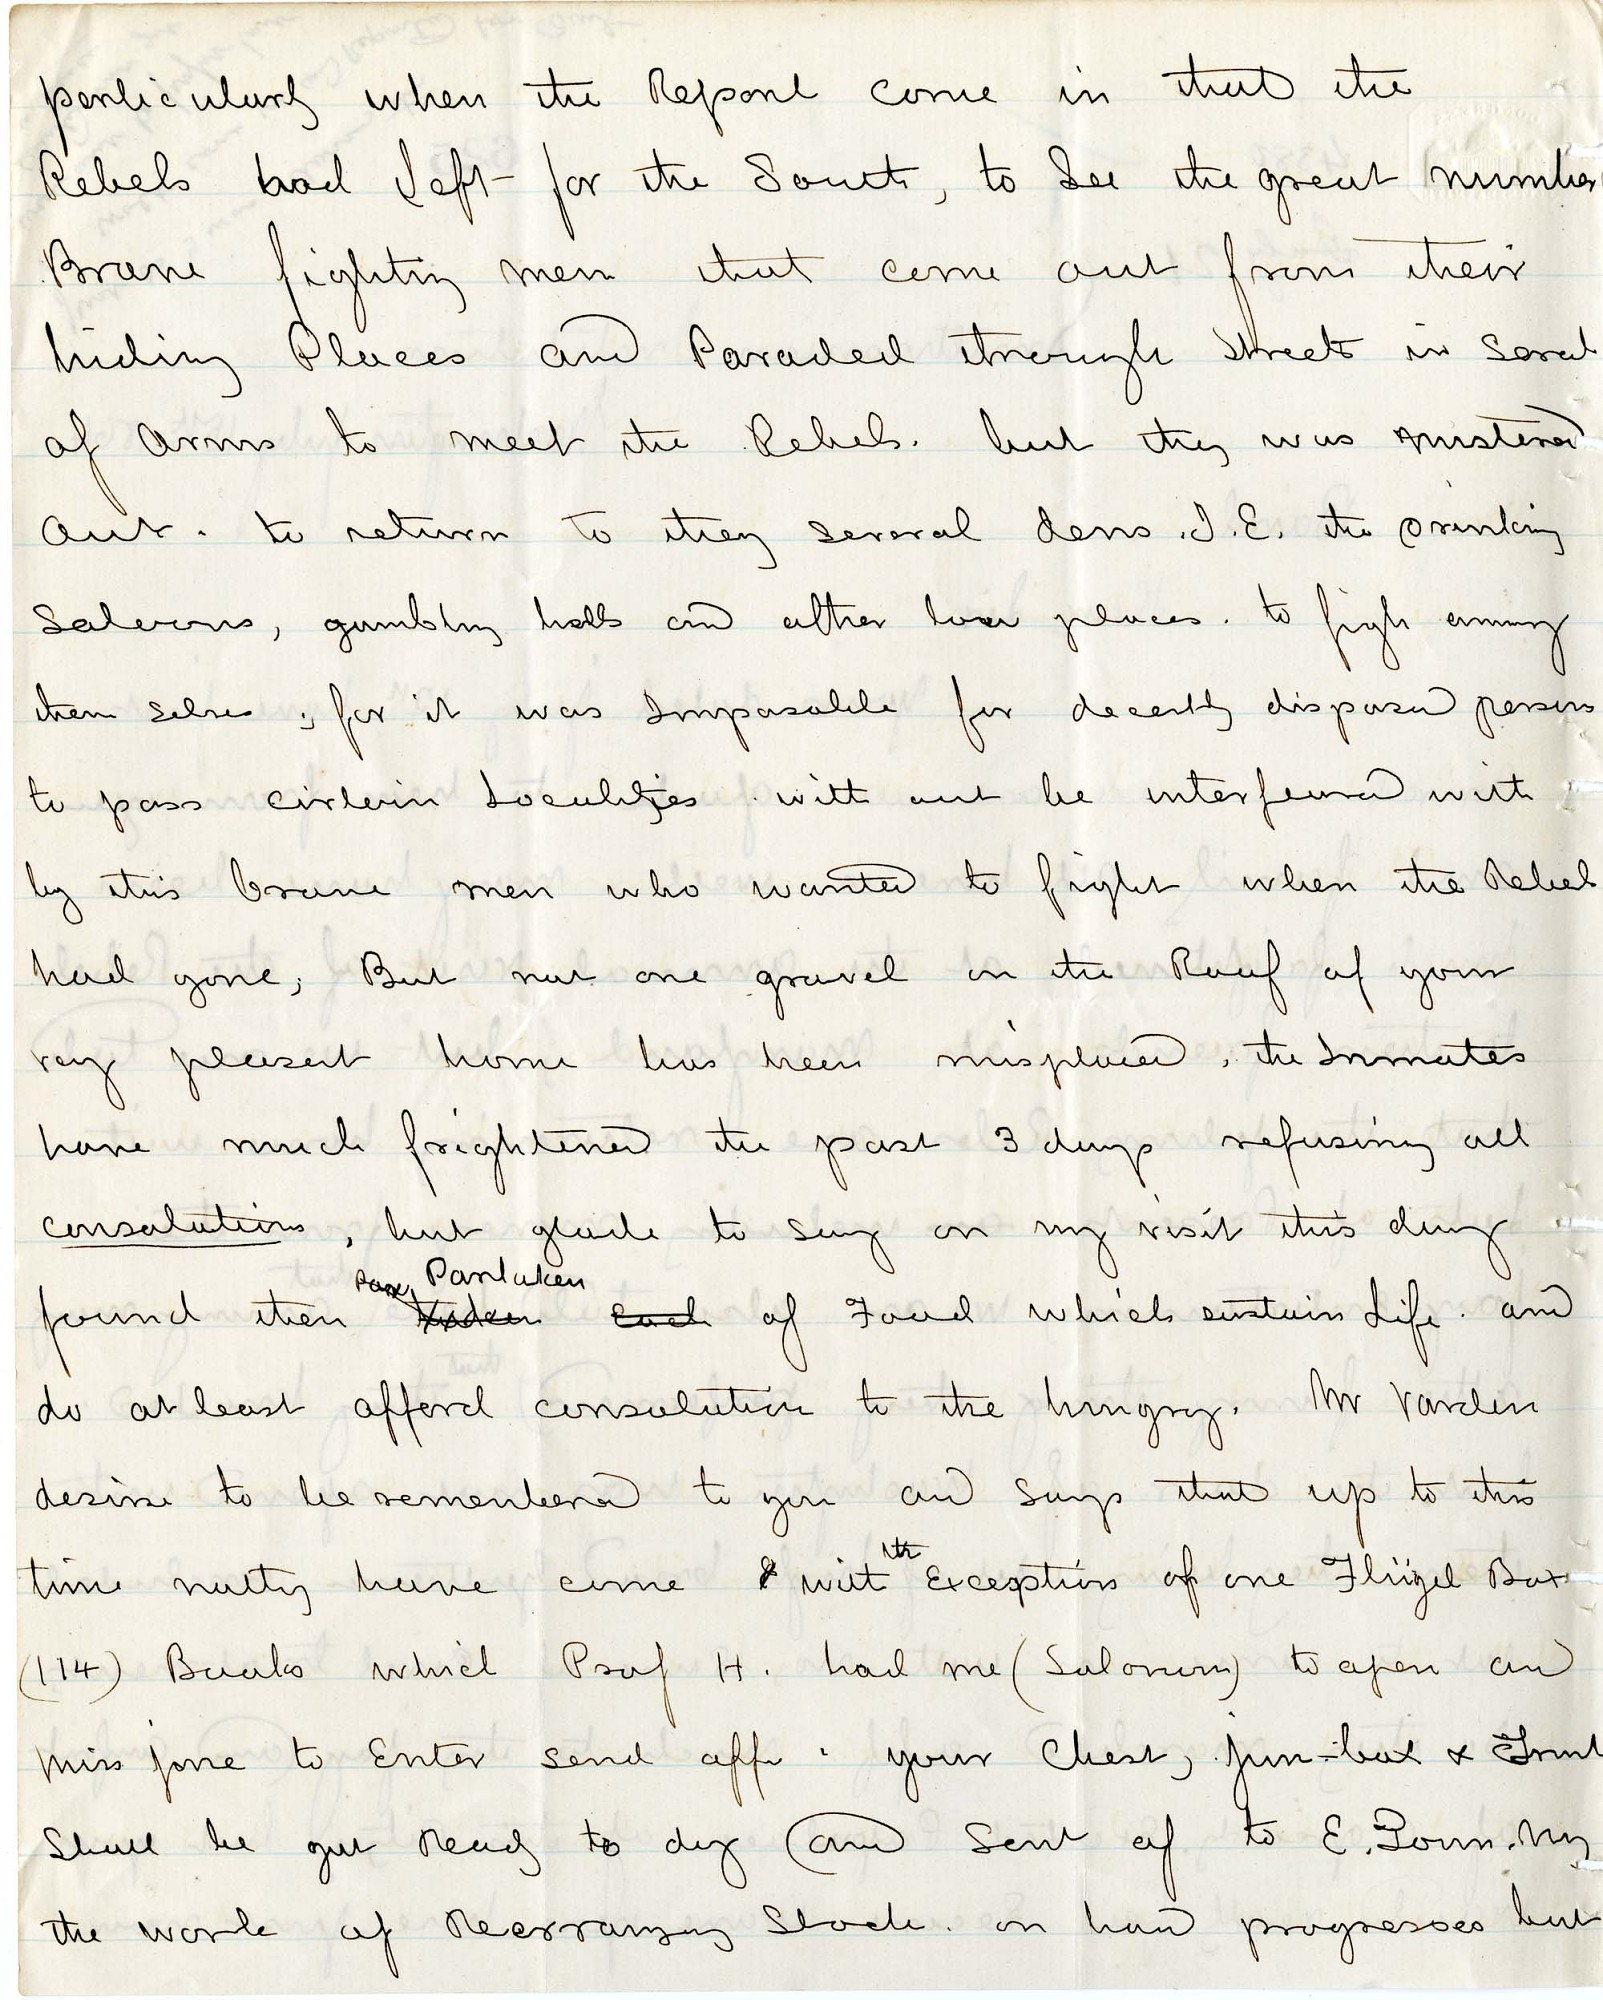 Solomon Brown Letter - July 15, 1864 - Page 2